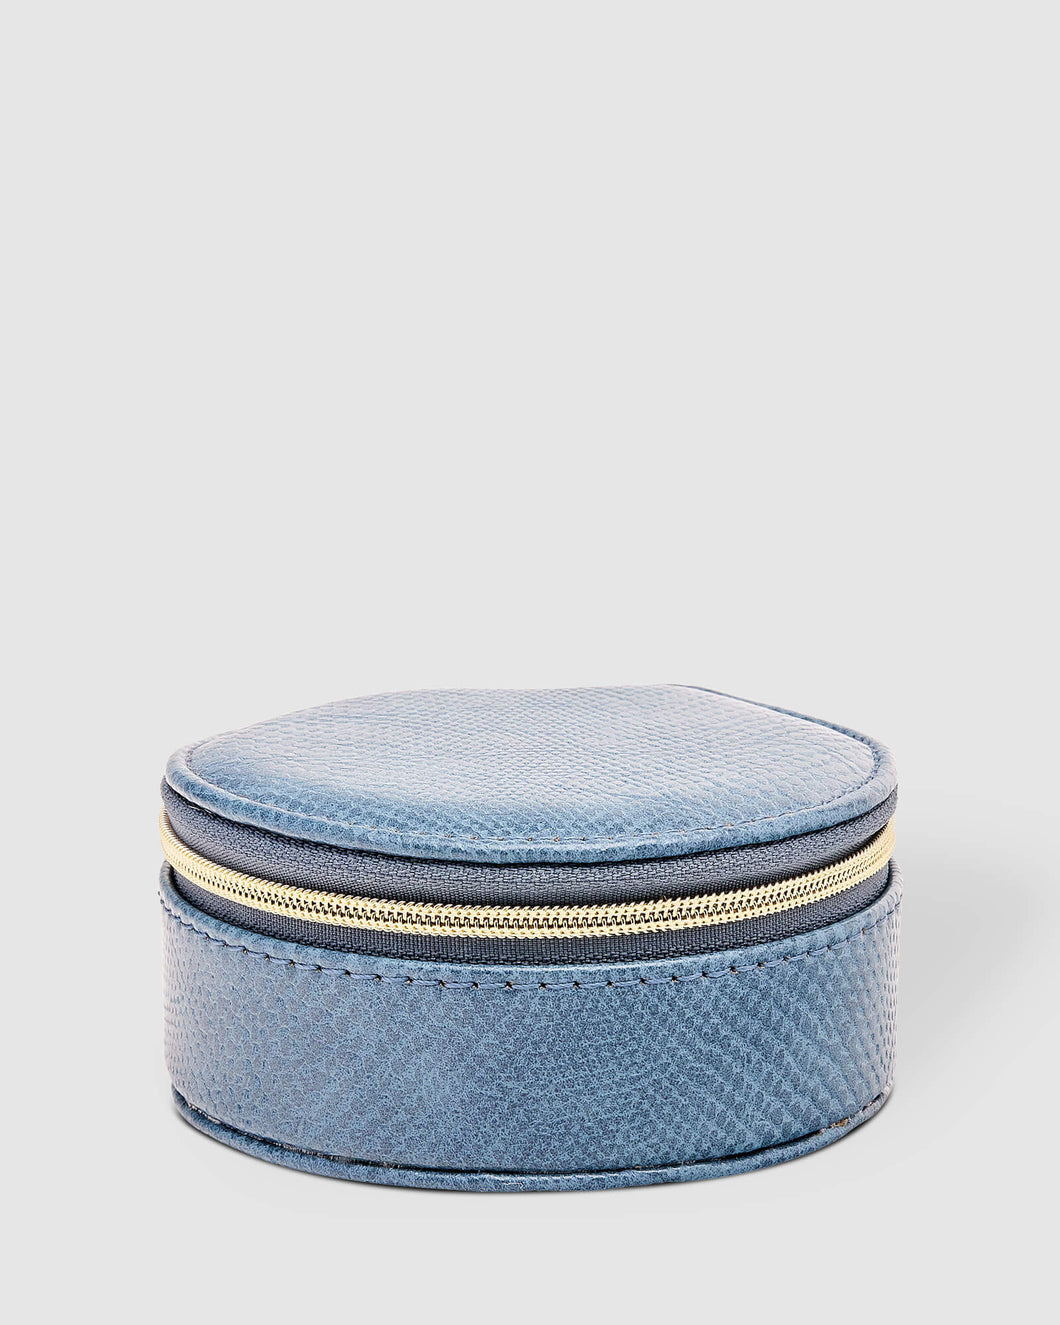 LOUENHIDE SISCO LIZARD JEWELLERY BOX - DENIM